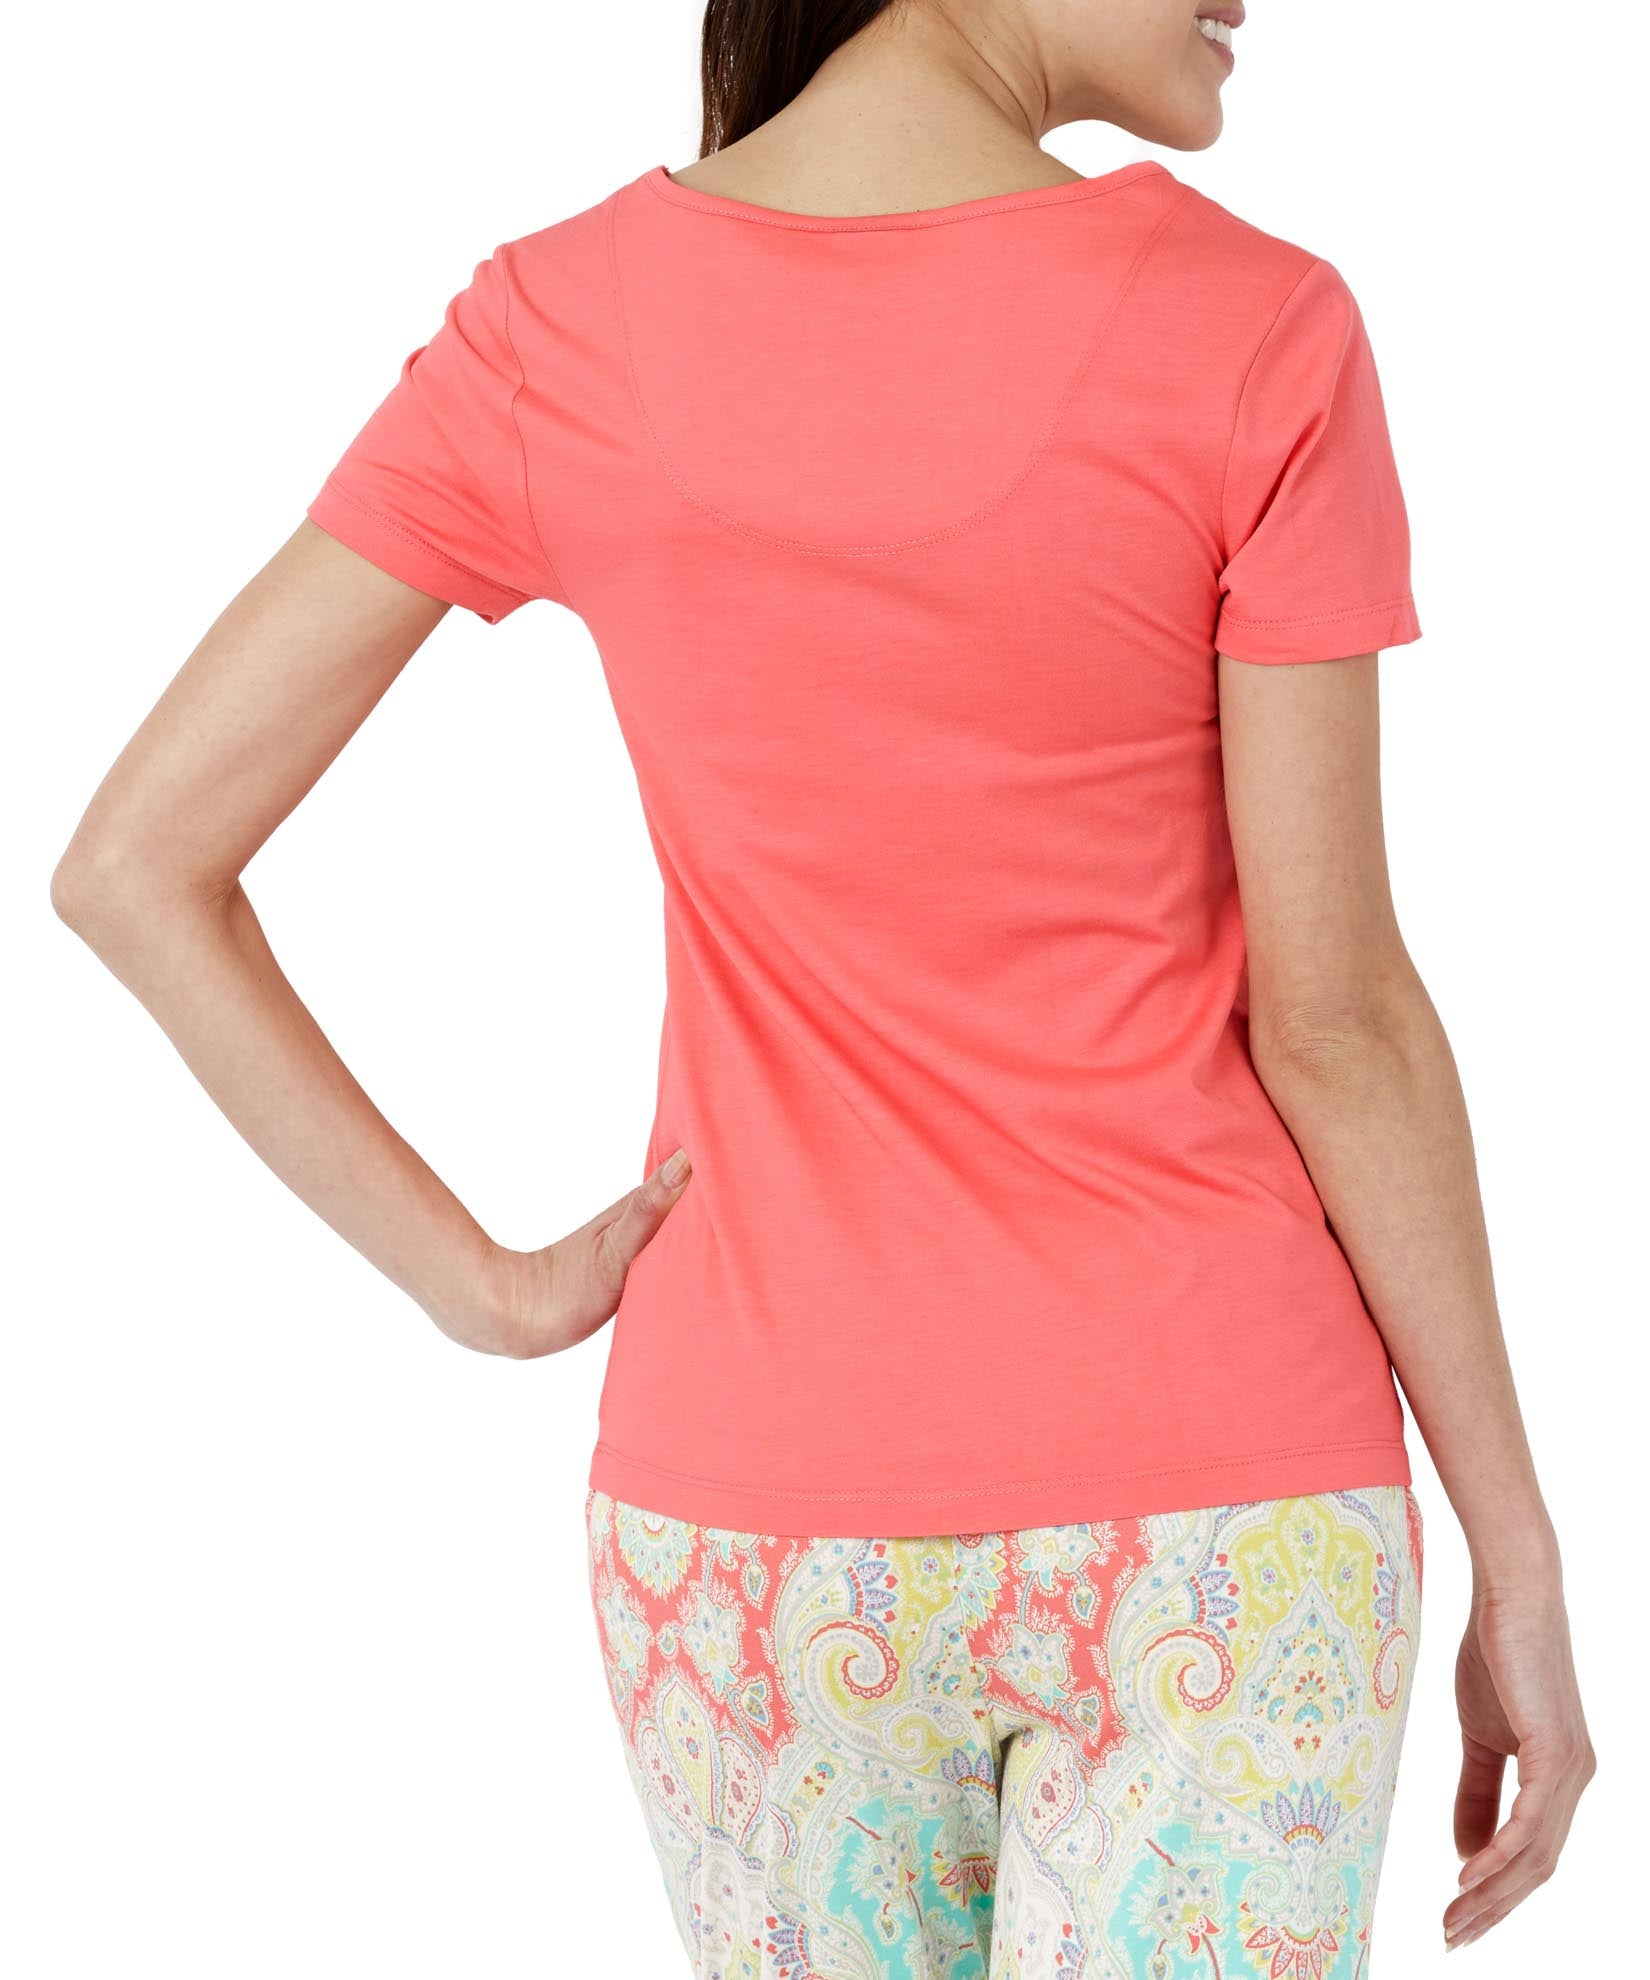 Coral - Cyprus Ss Tee